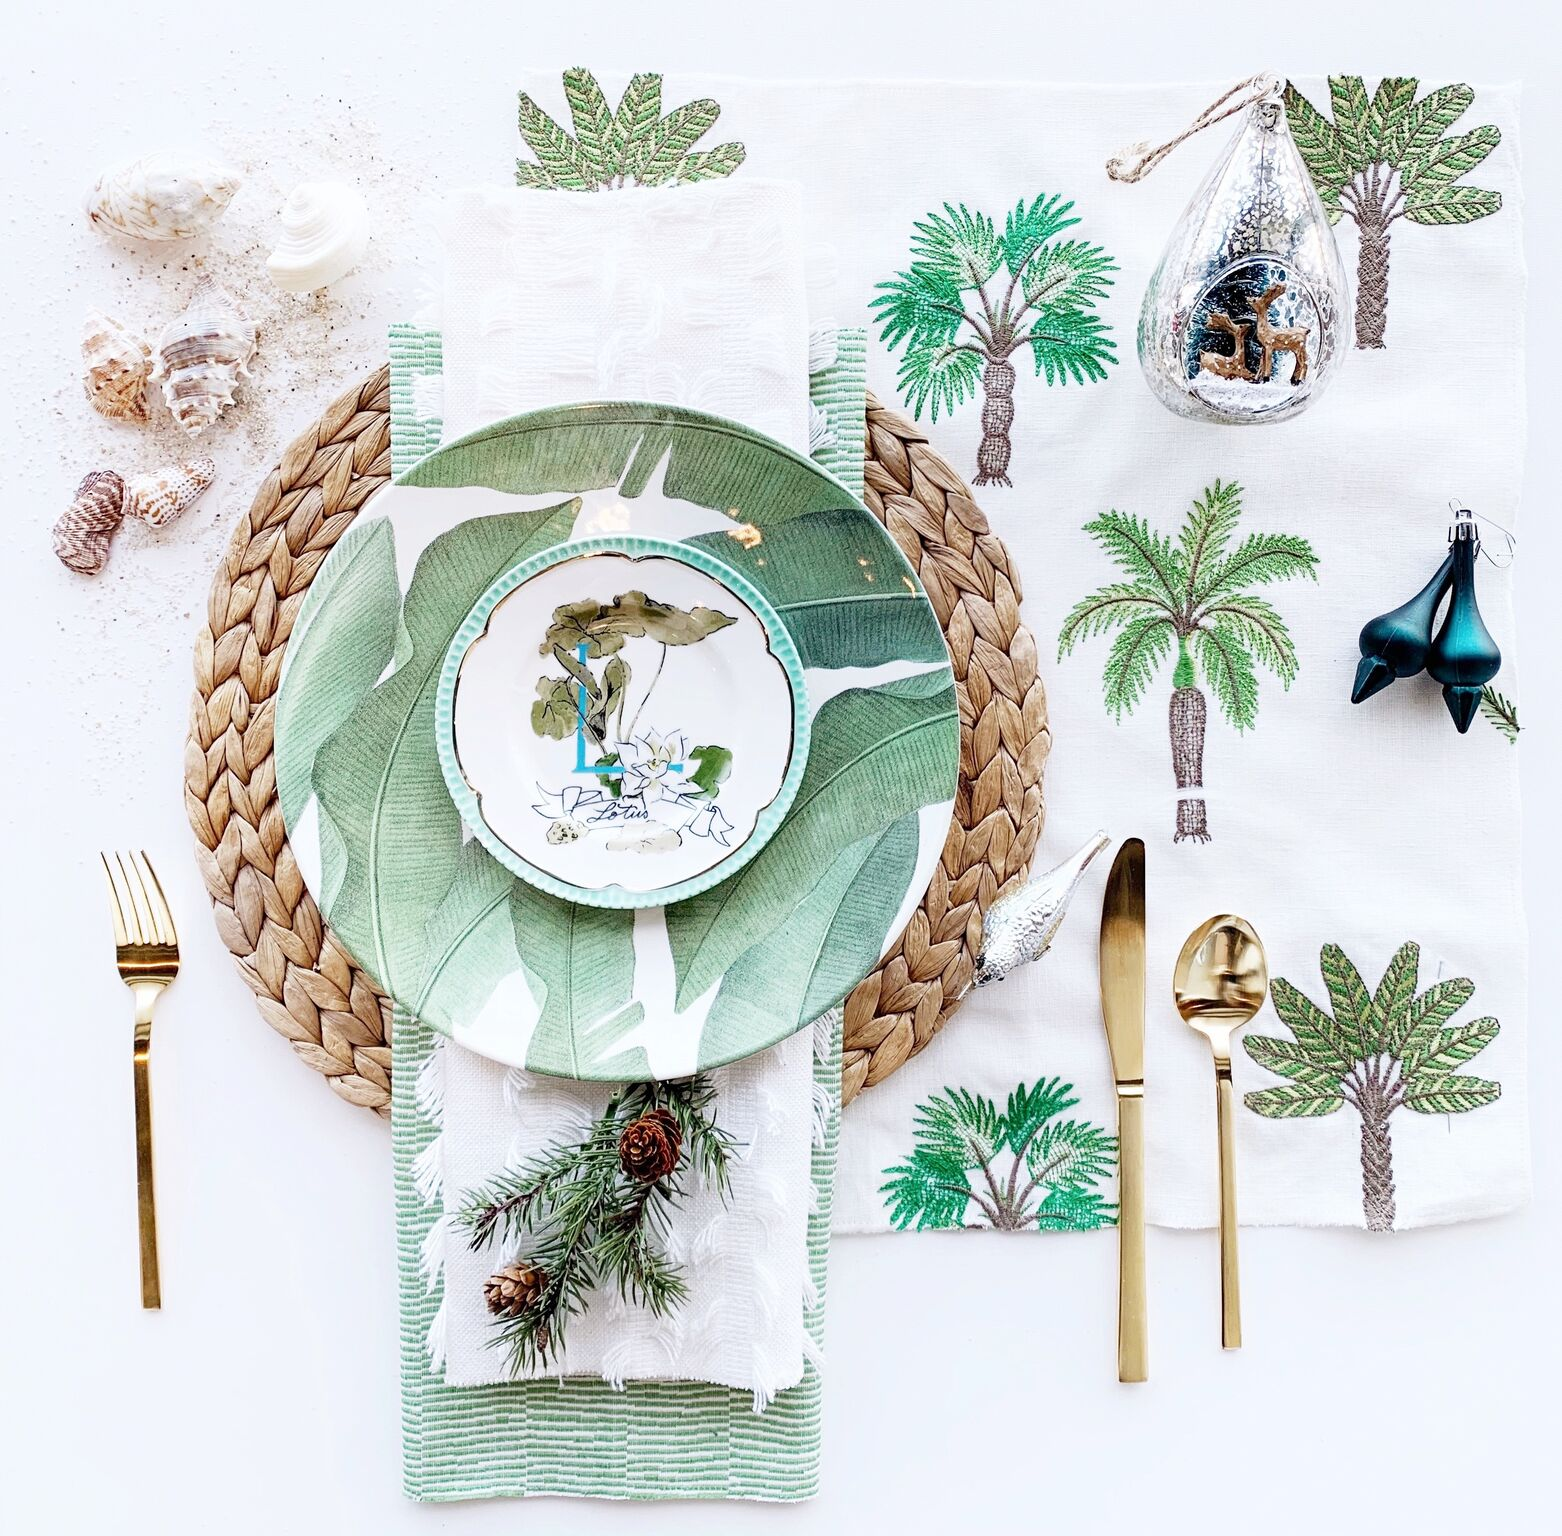 leanne bunnell interiors calgary table setting tropical christmas paradise palm trees green gold organic ornaments